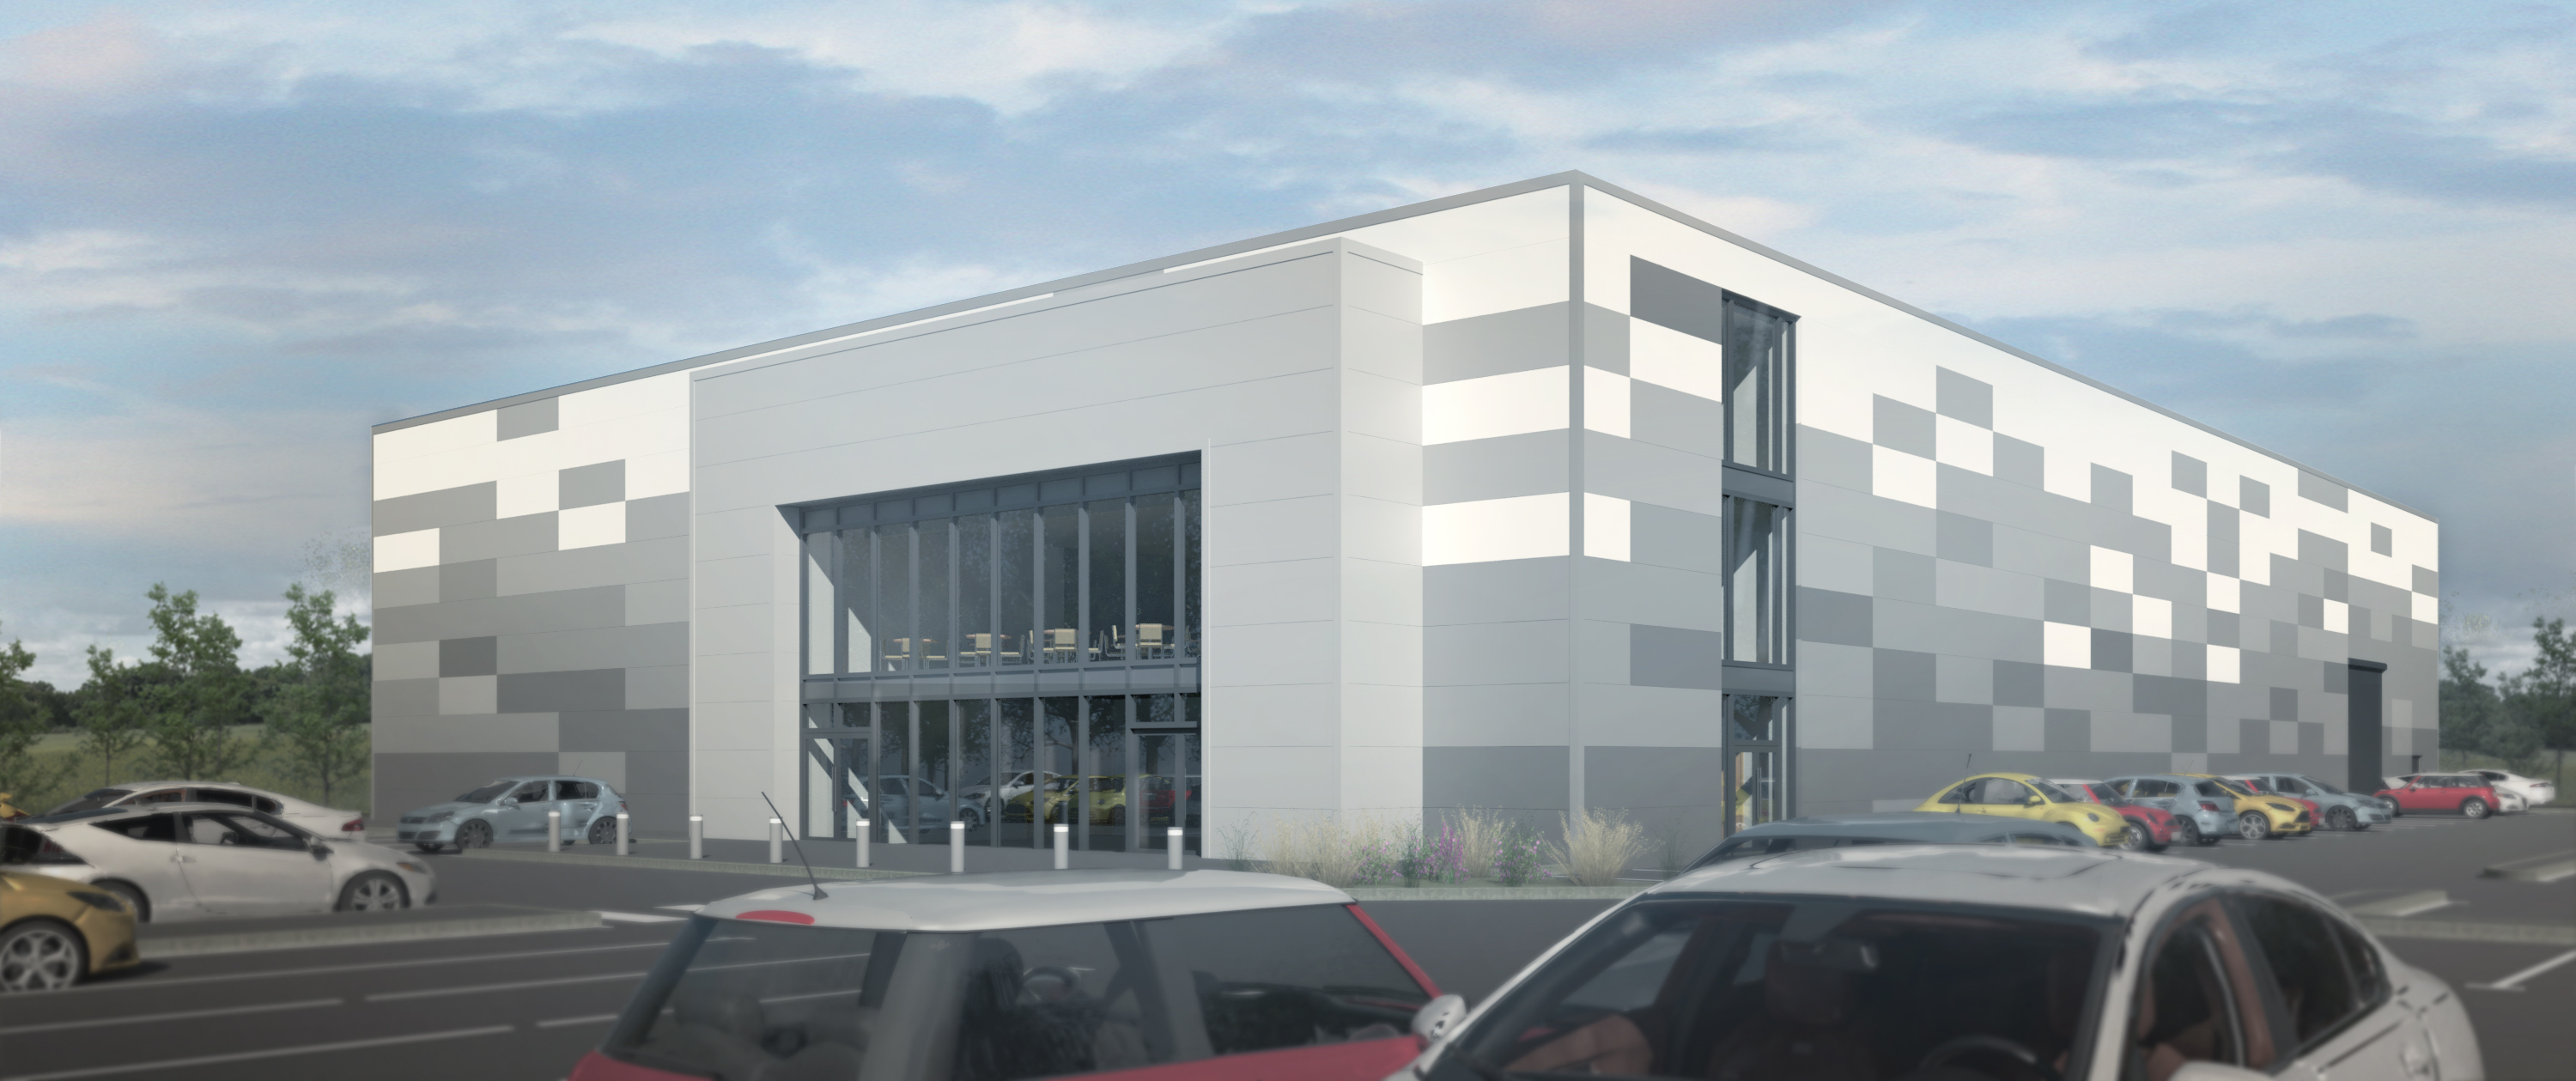 Croft Architecture secure planning permission for a new warehouse to support business growth in Staffordshire